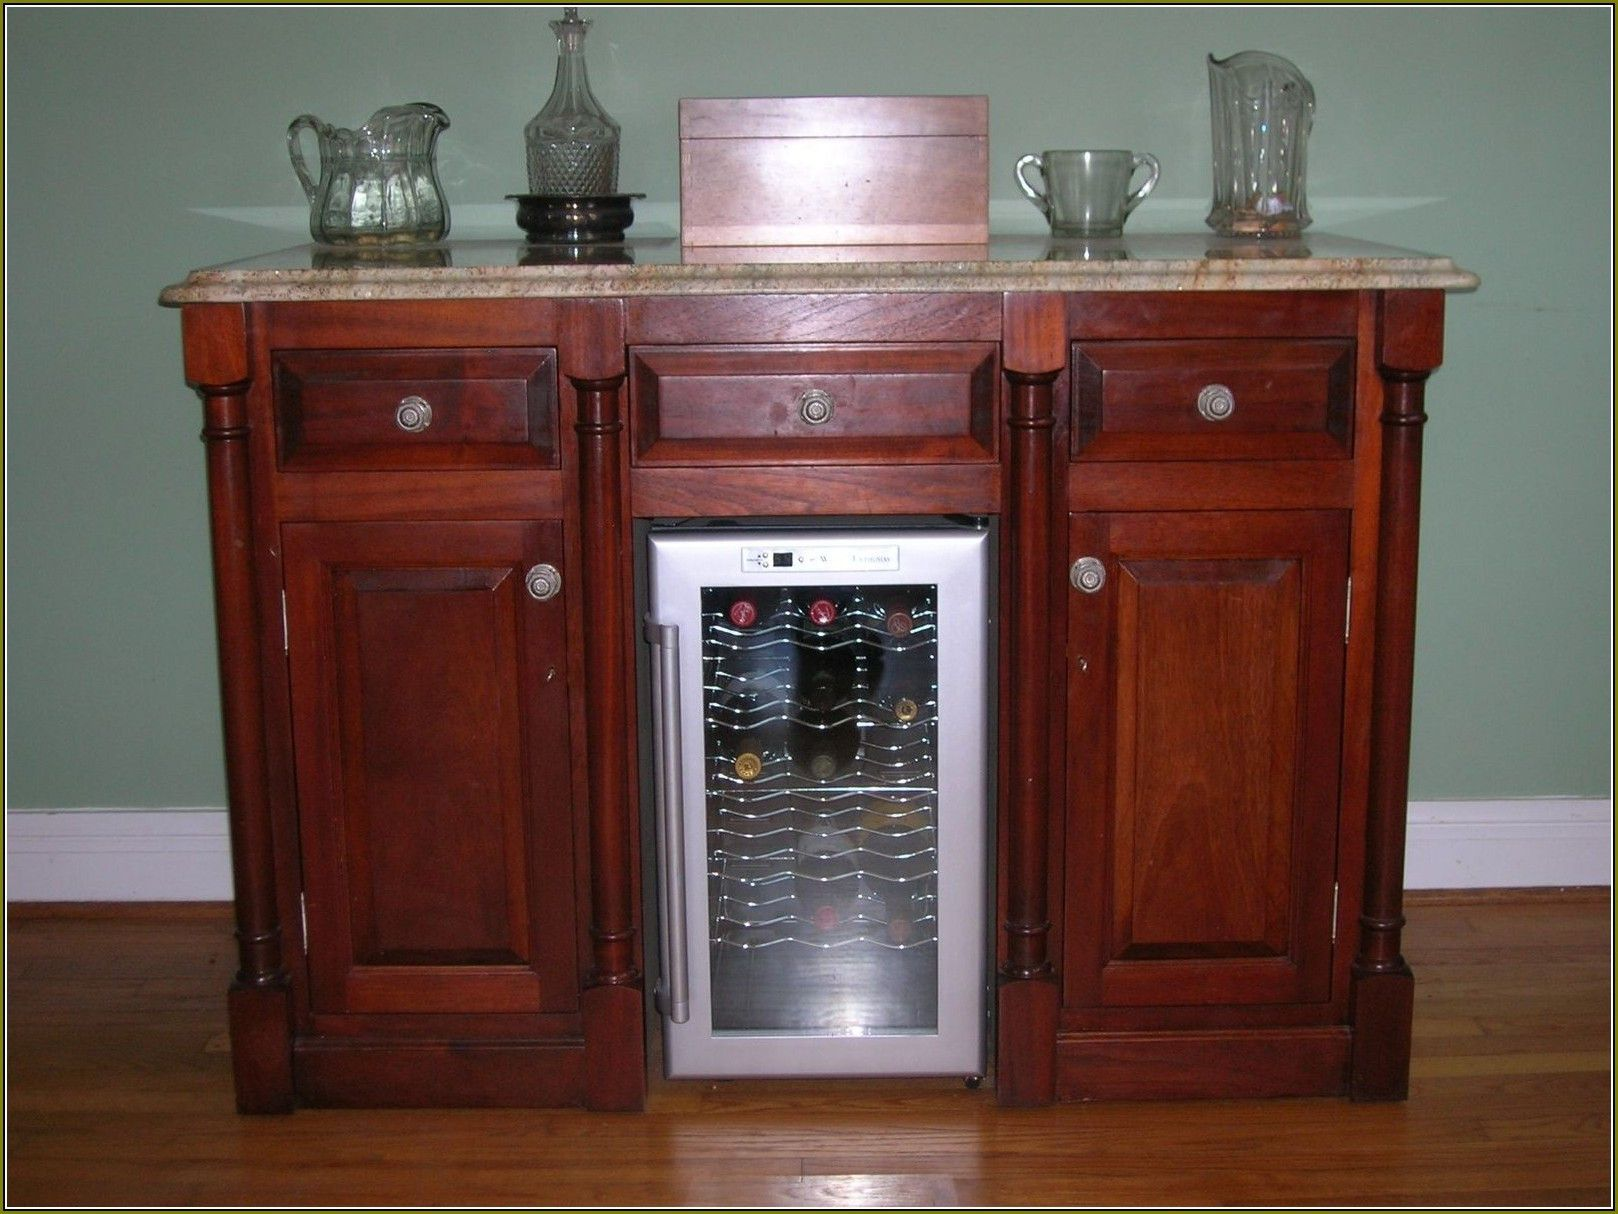 77 Small Wine Fridge Cabinet Kitchen Design And Layout Ideas Check More At Http Www Planetgreenspot C Wine Bar Cabinet Home Bar Cabinet Wine Bar Furniture